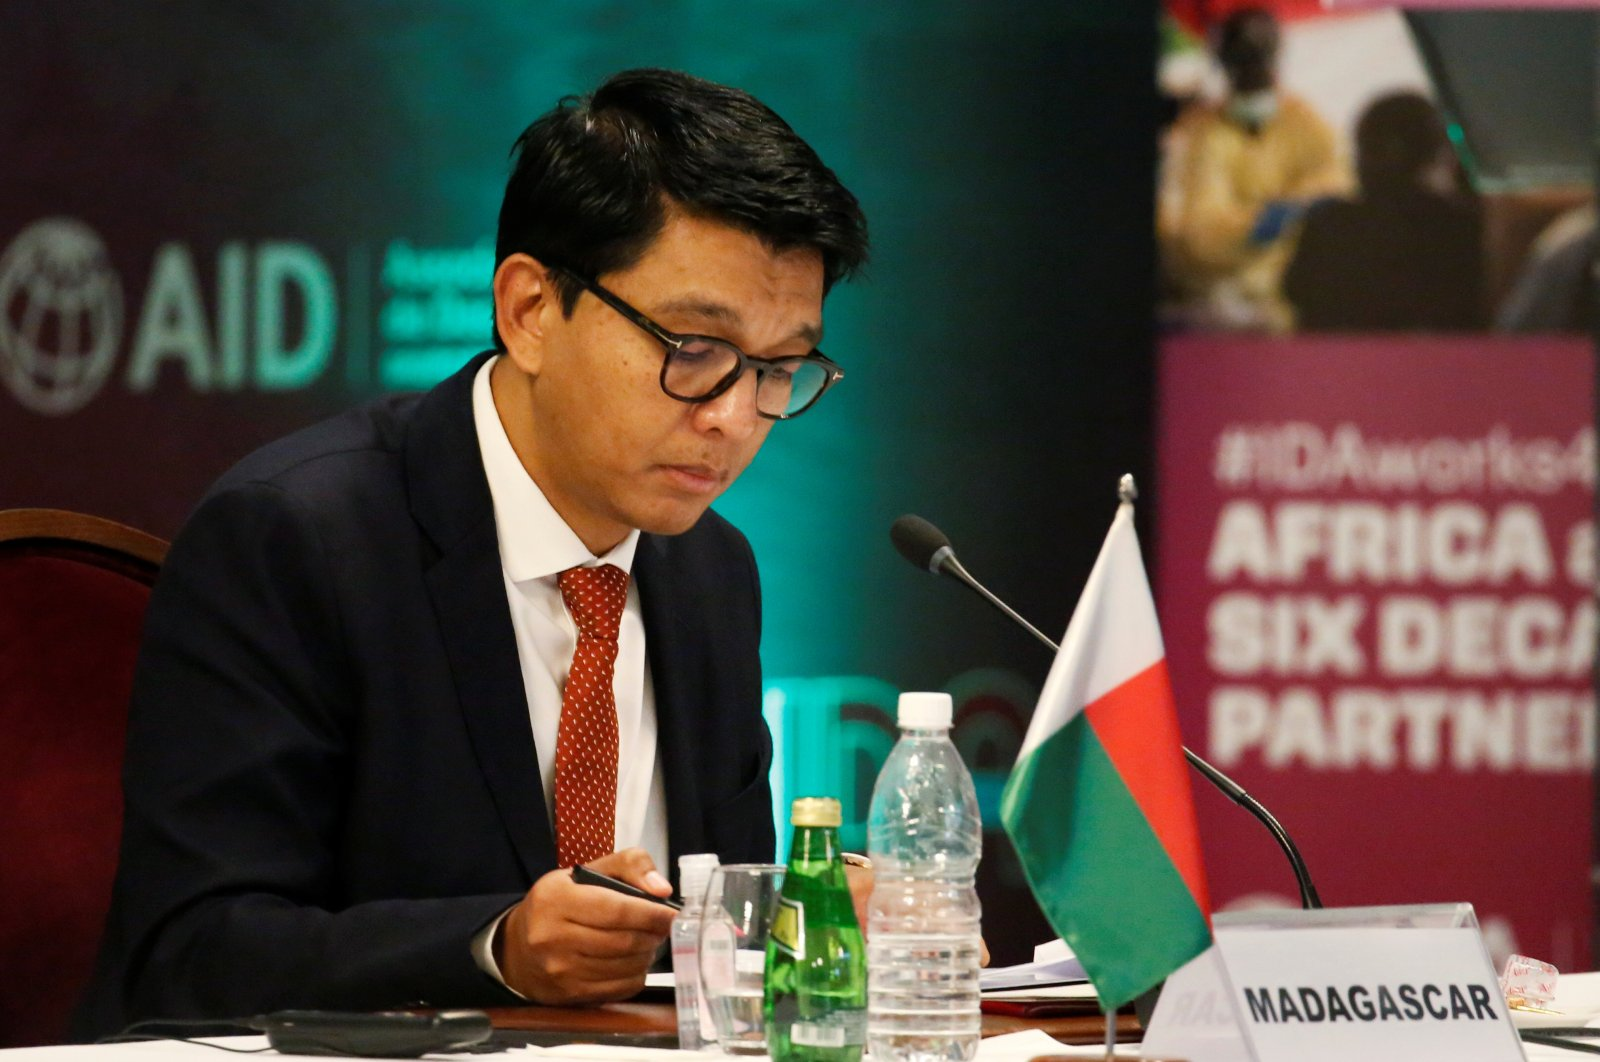 Madagascar's President Andry Rajoelina attends a meeting to discuss the 20th replenishment of the World Bank's International Development Association, in Abidjan, Ivory Coast, July 15, 2021. (Reuters Photo)